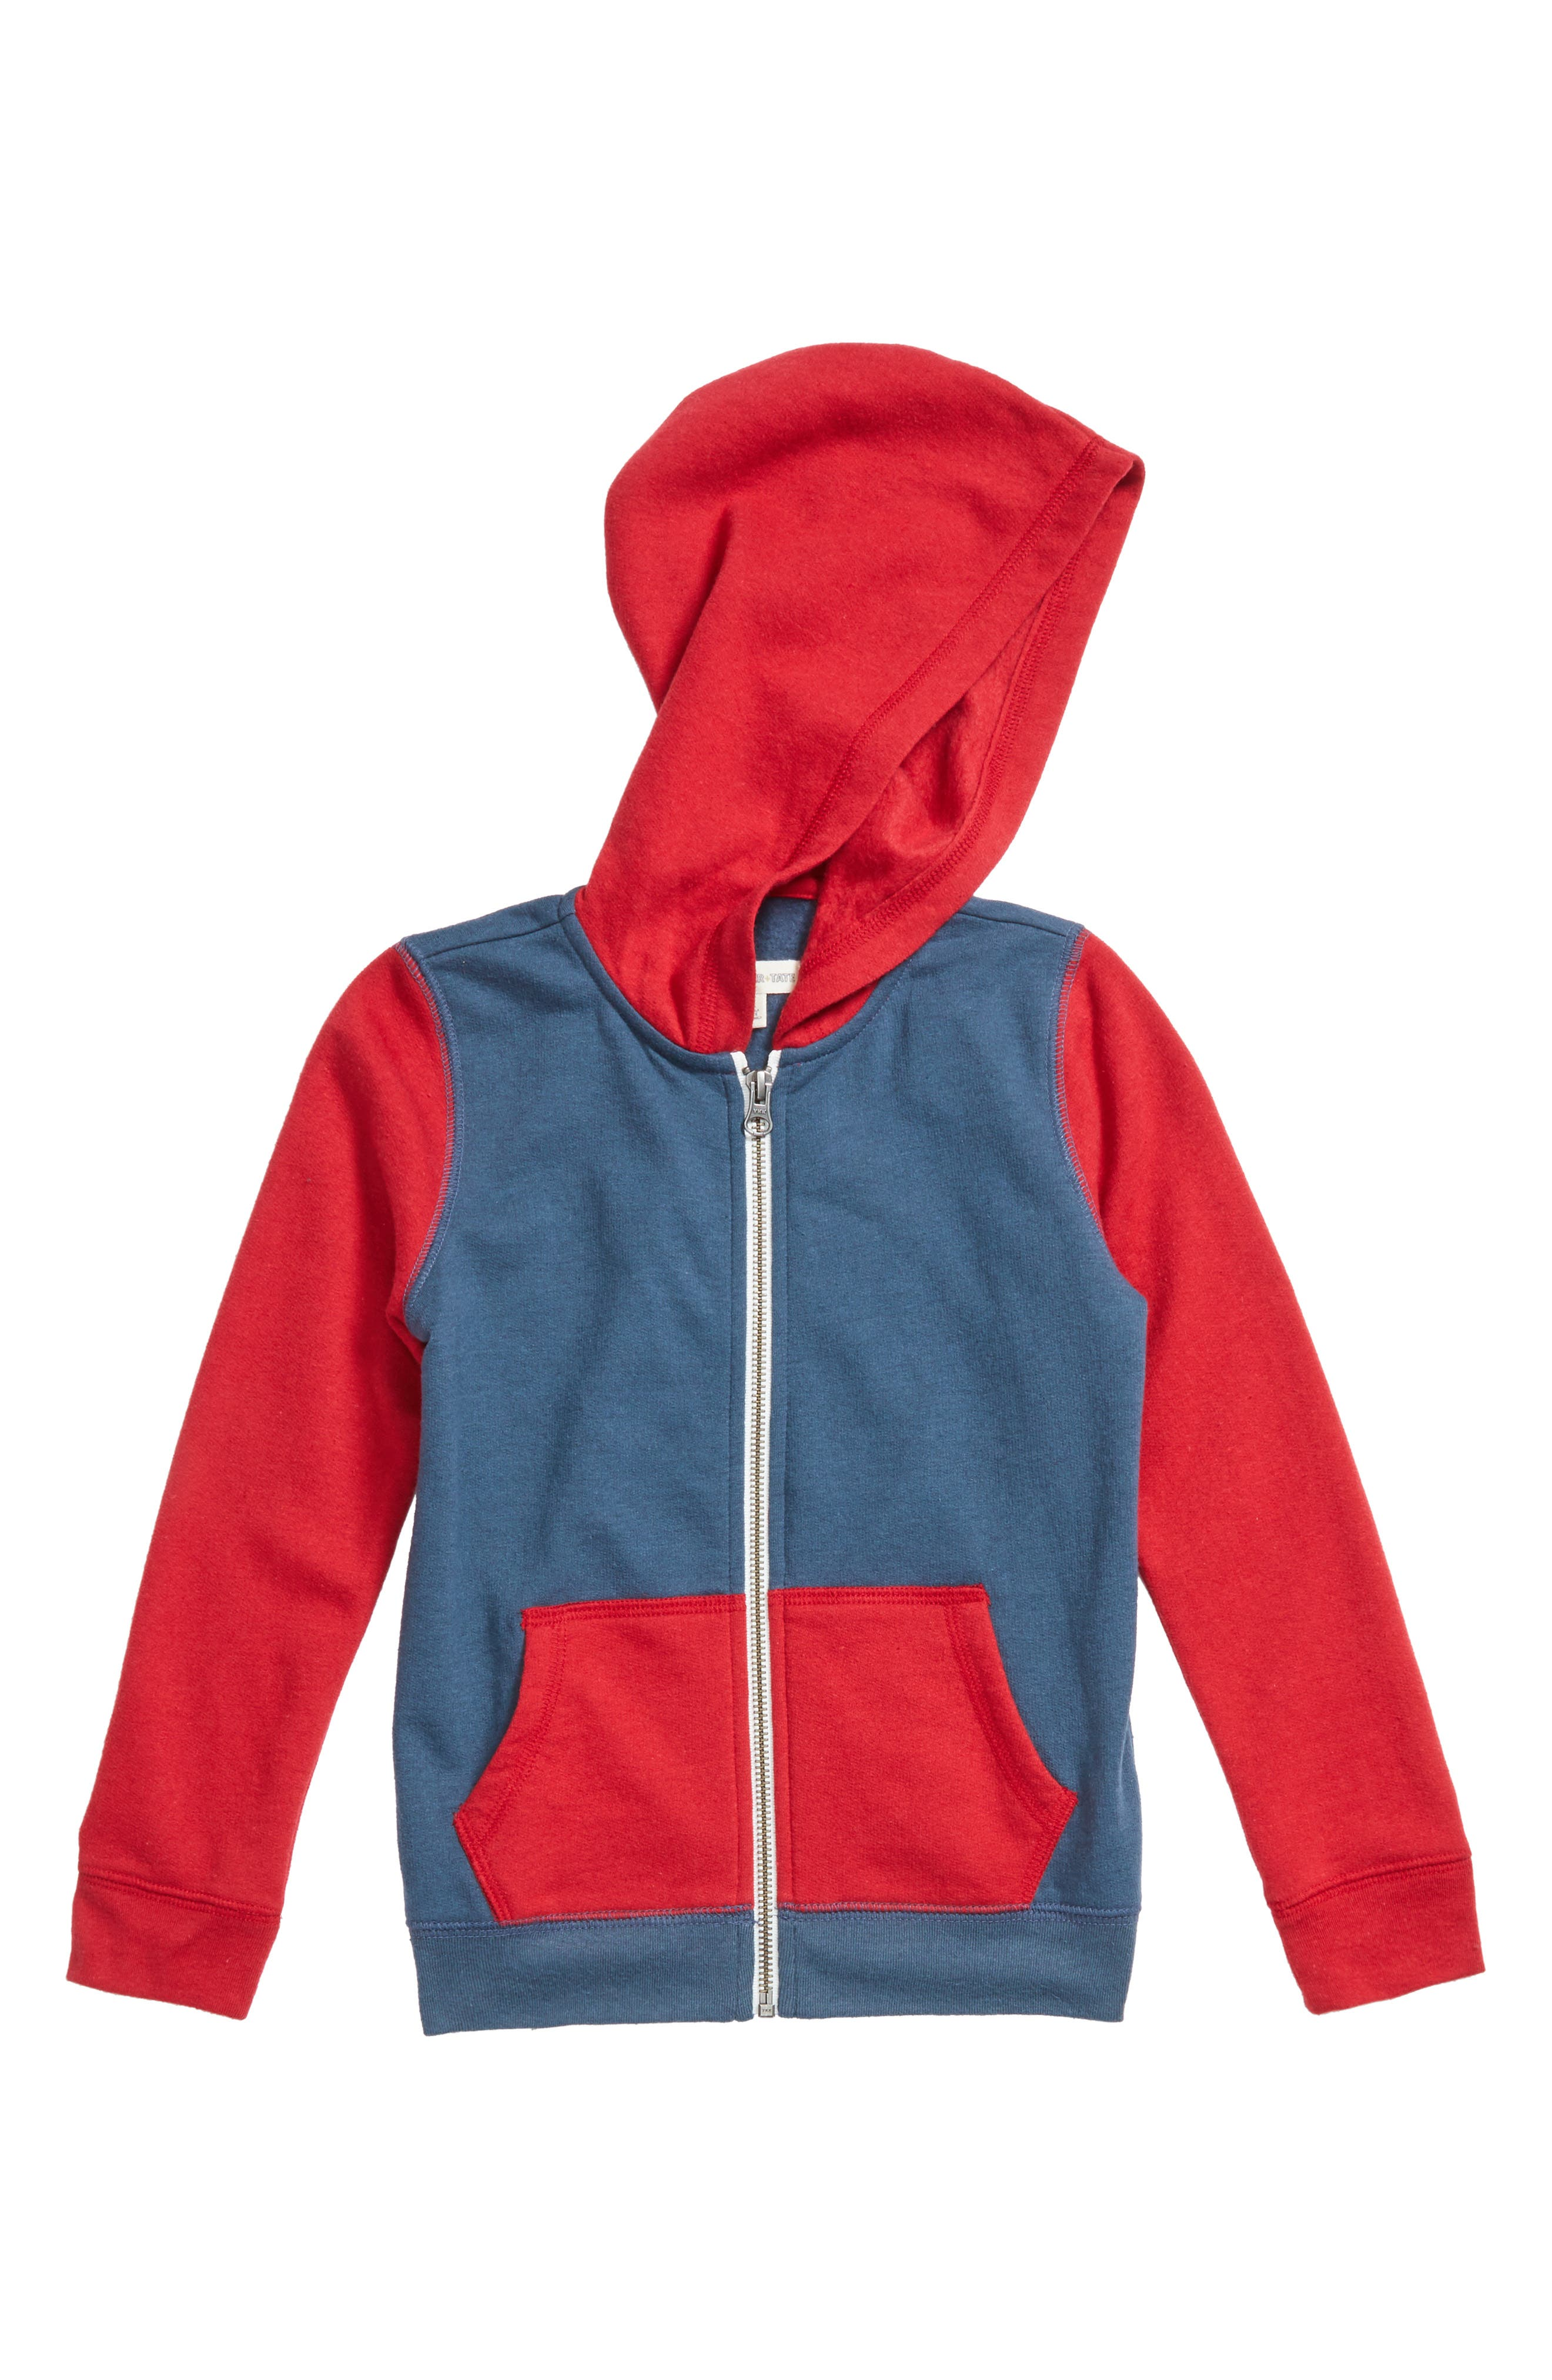 Tucker + Tate Colorblock Hoodie (Toddler Boys & Little Boys)